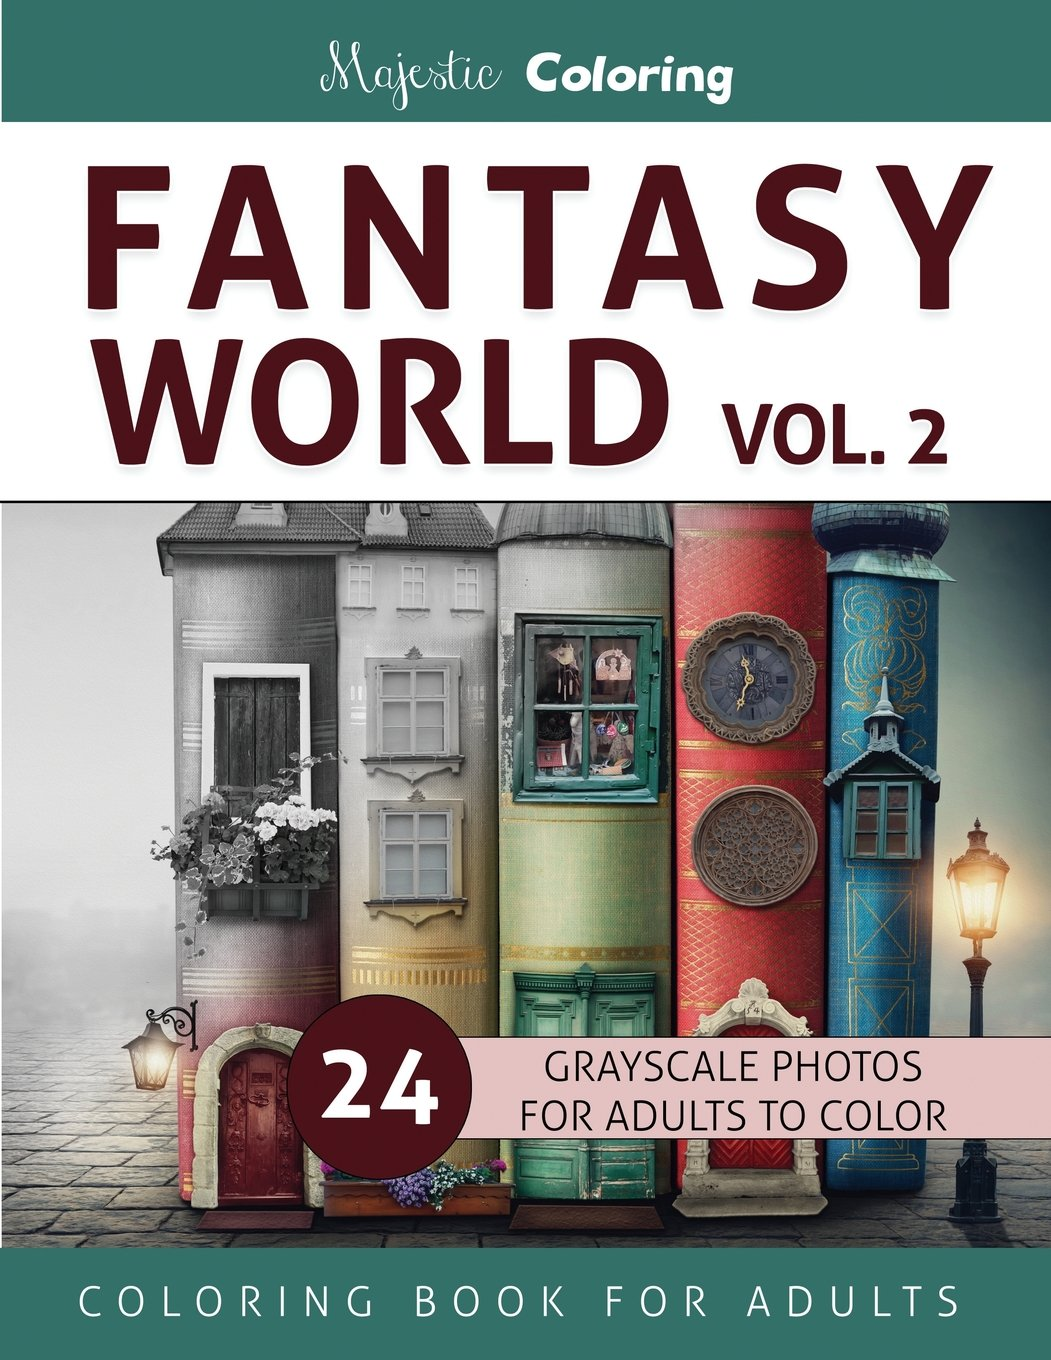 Fantasy World Vol 2 Grayscale Coloring Book For Adults Majestic 9781533591388 Amazon Books